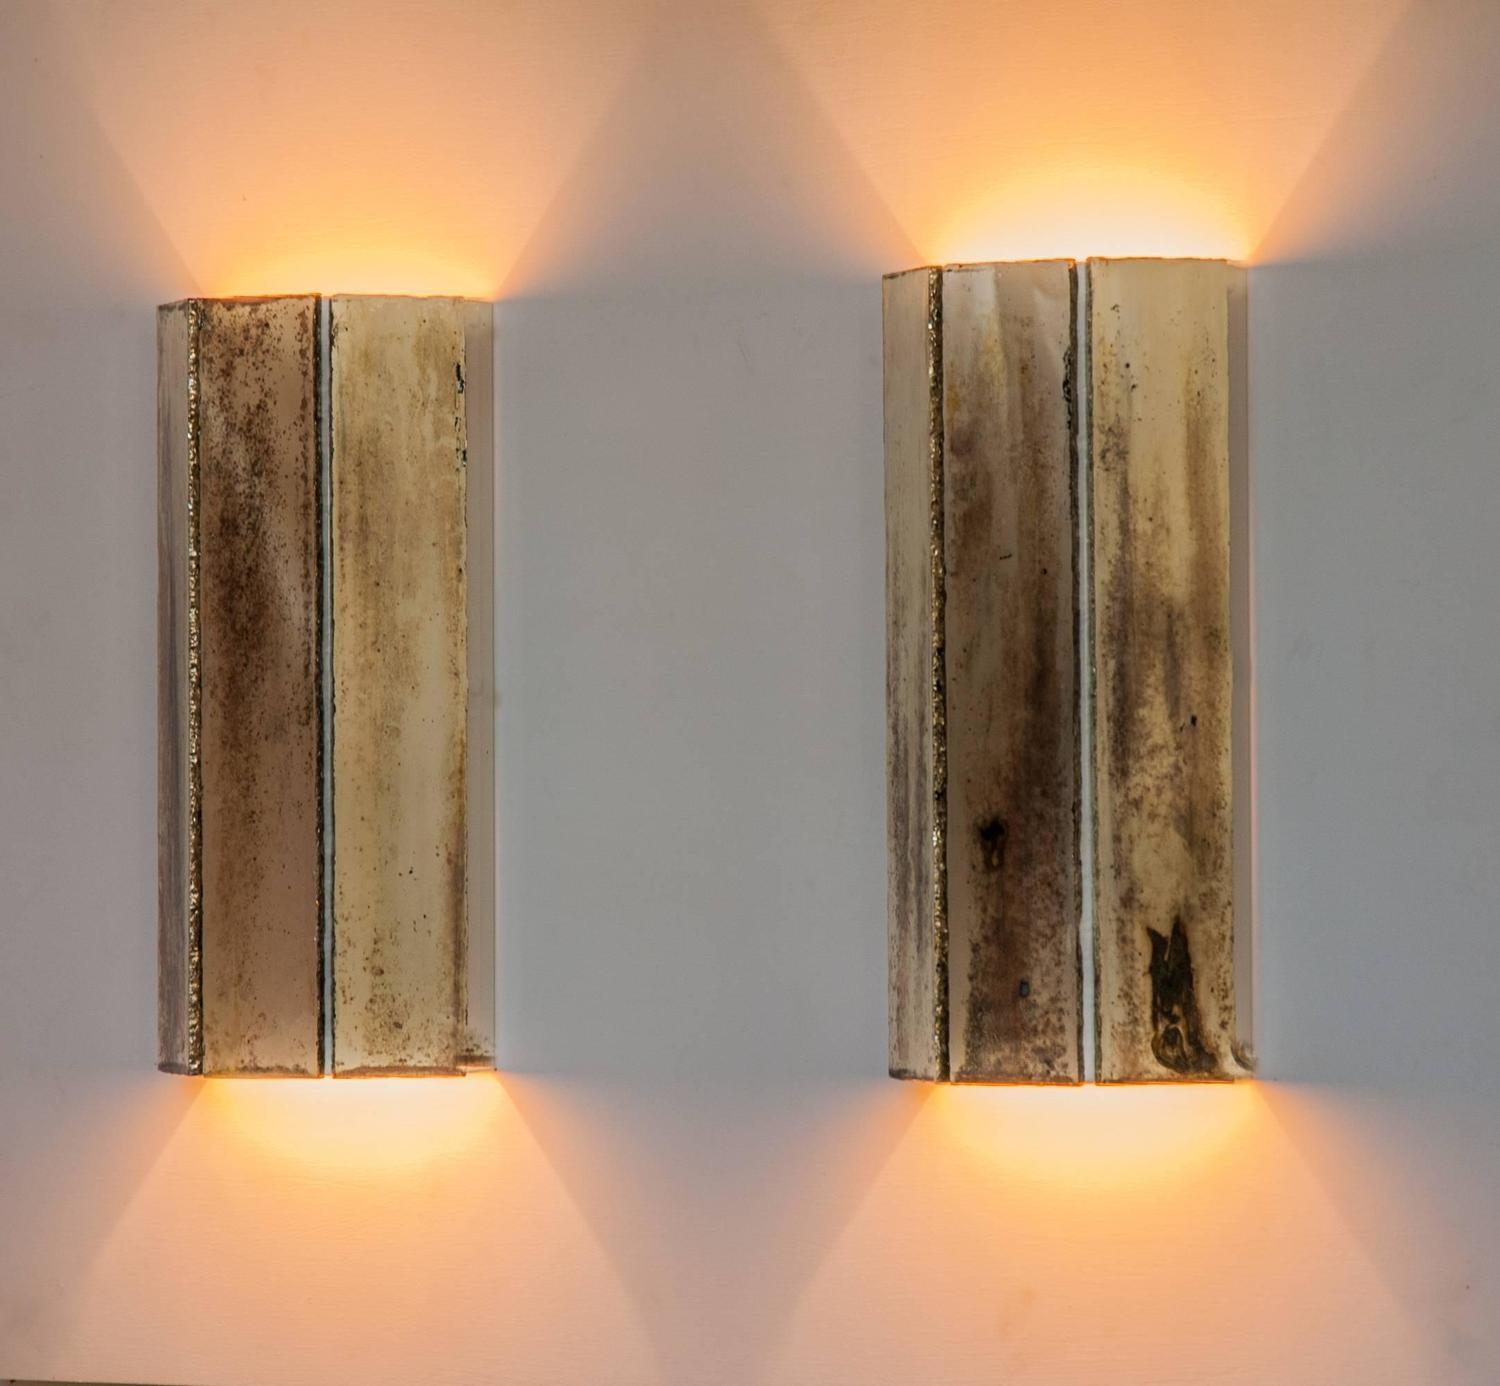 Trilogy jewel pair of wall lamp sconces silvered glass living room next mirror For Sale at 1stdibs